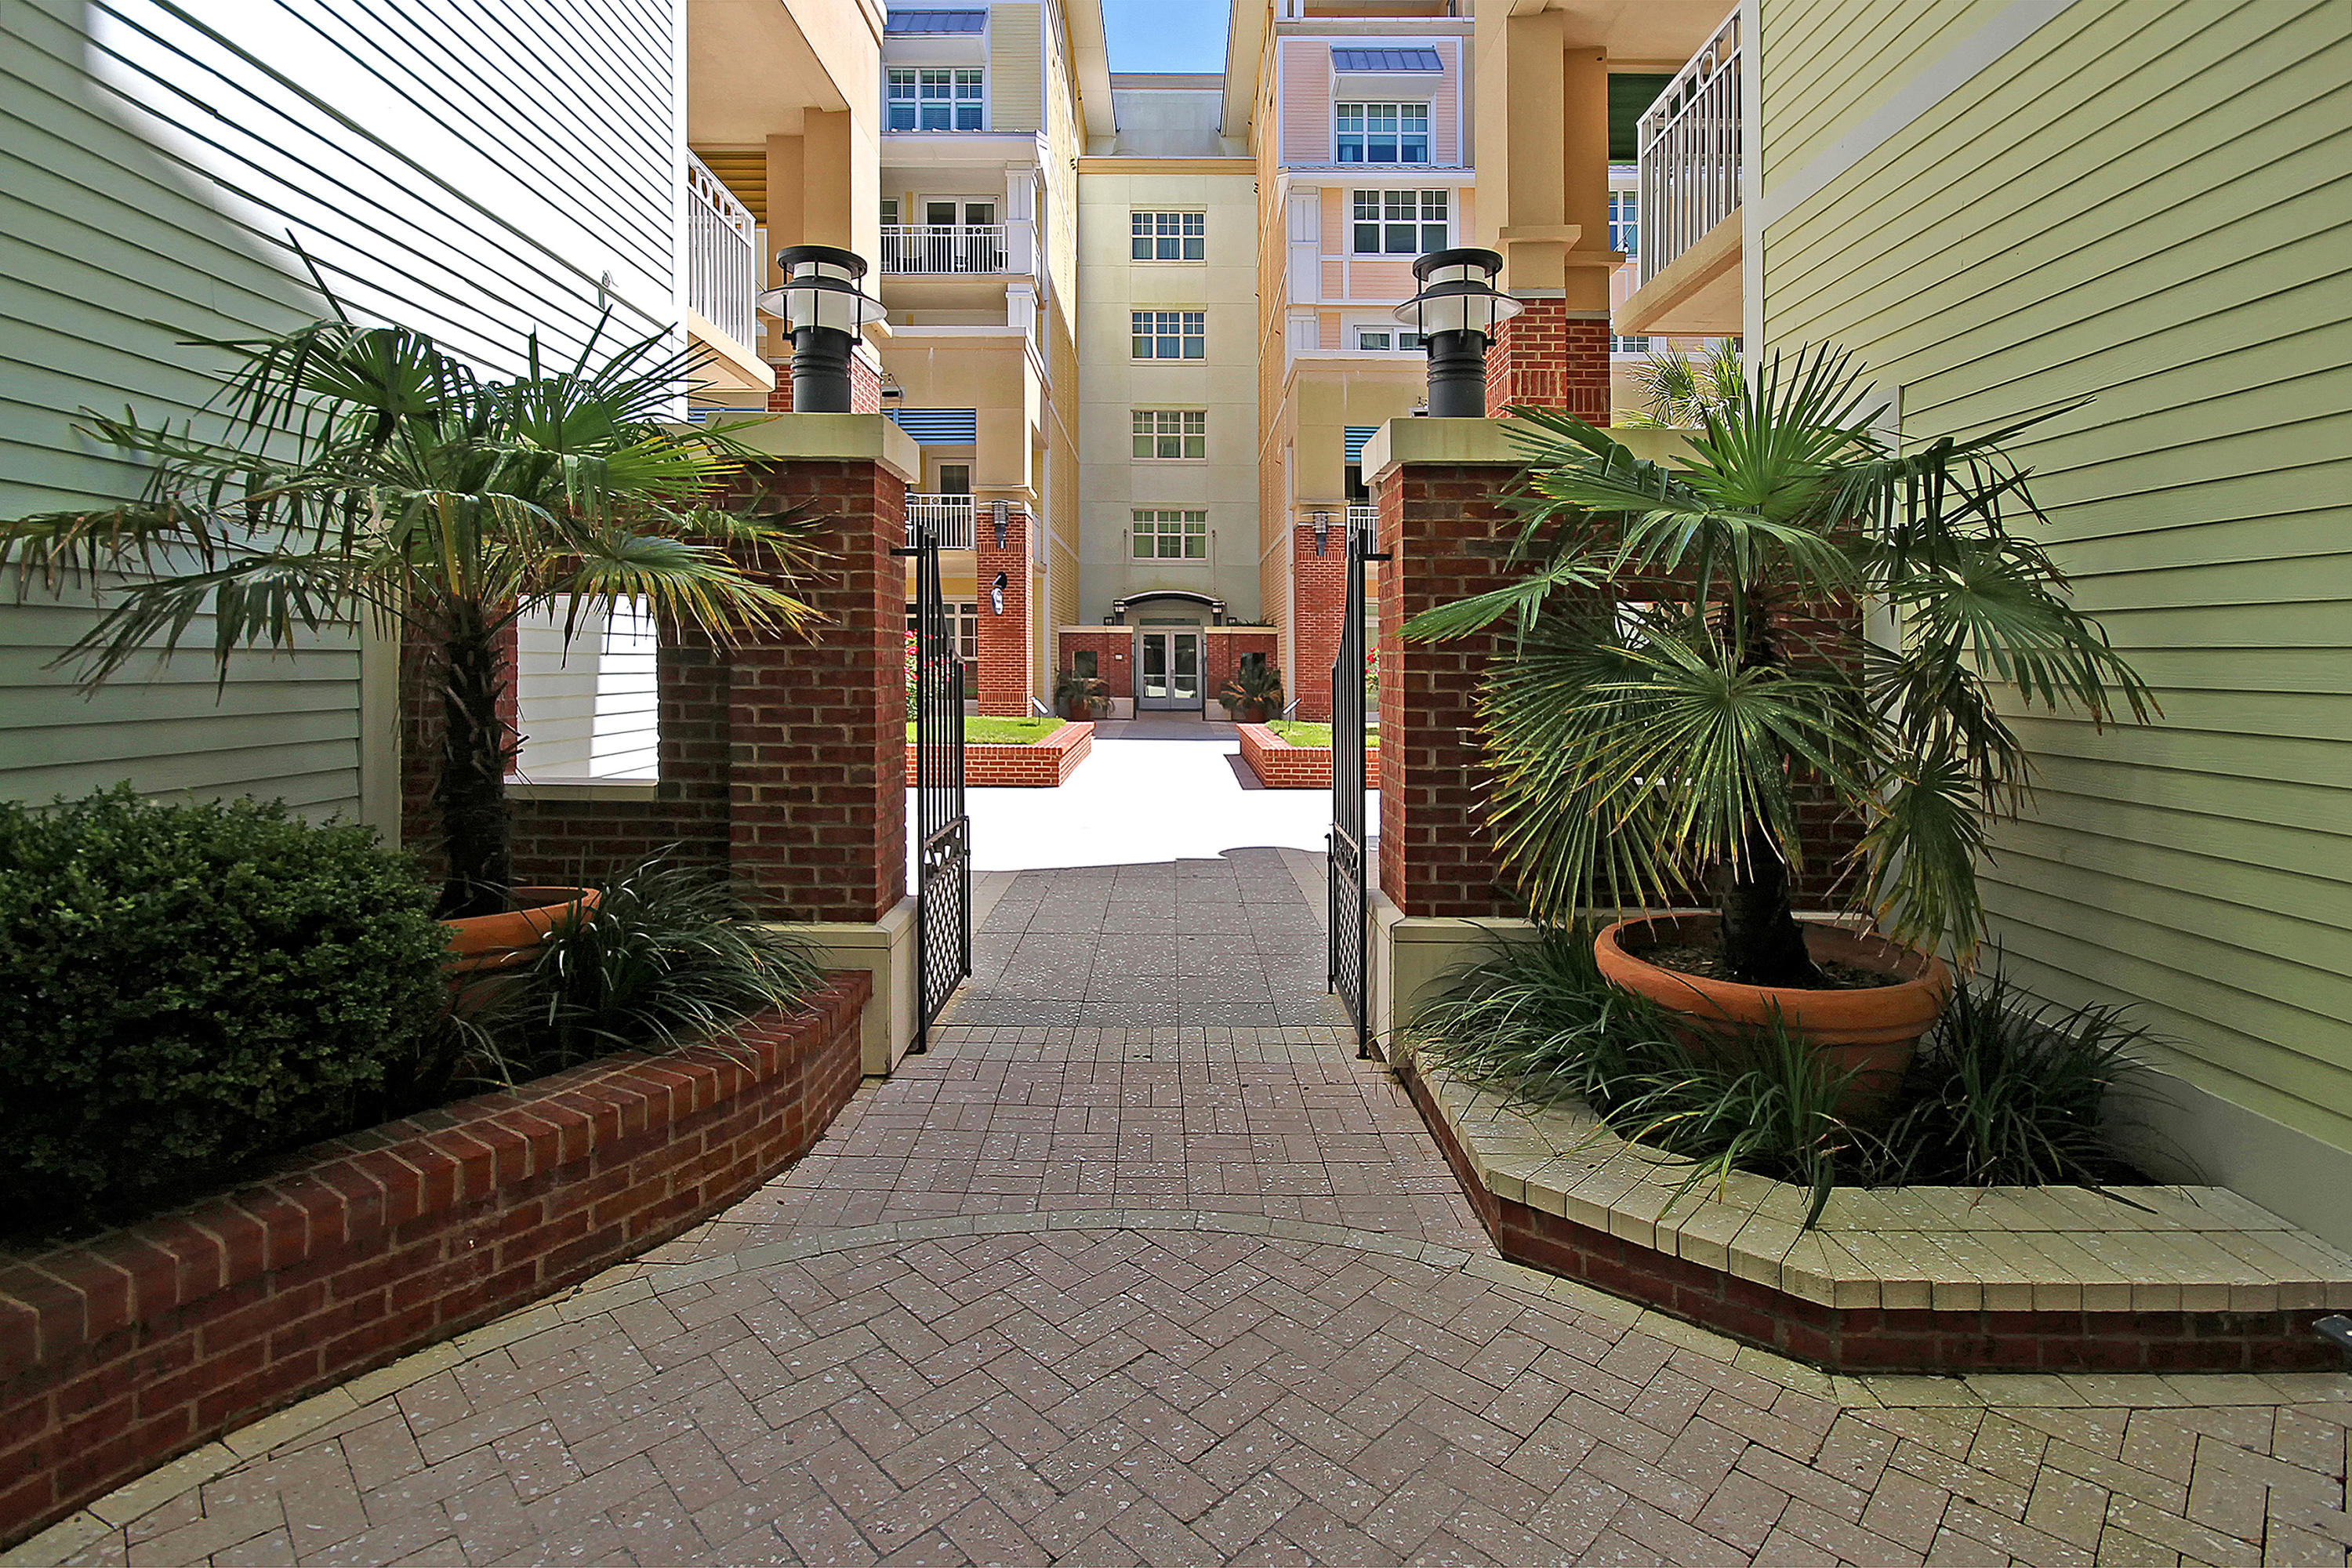 Wild Dunes Homes For Sale - 406-A Village At Wild Dunes, Isle of Palms, SC - 7